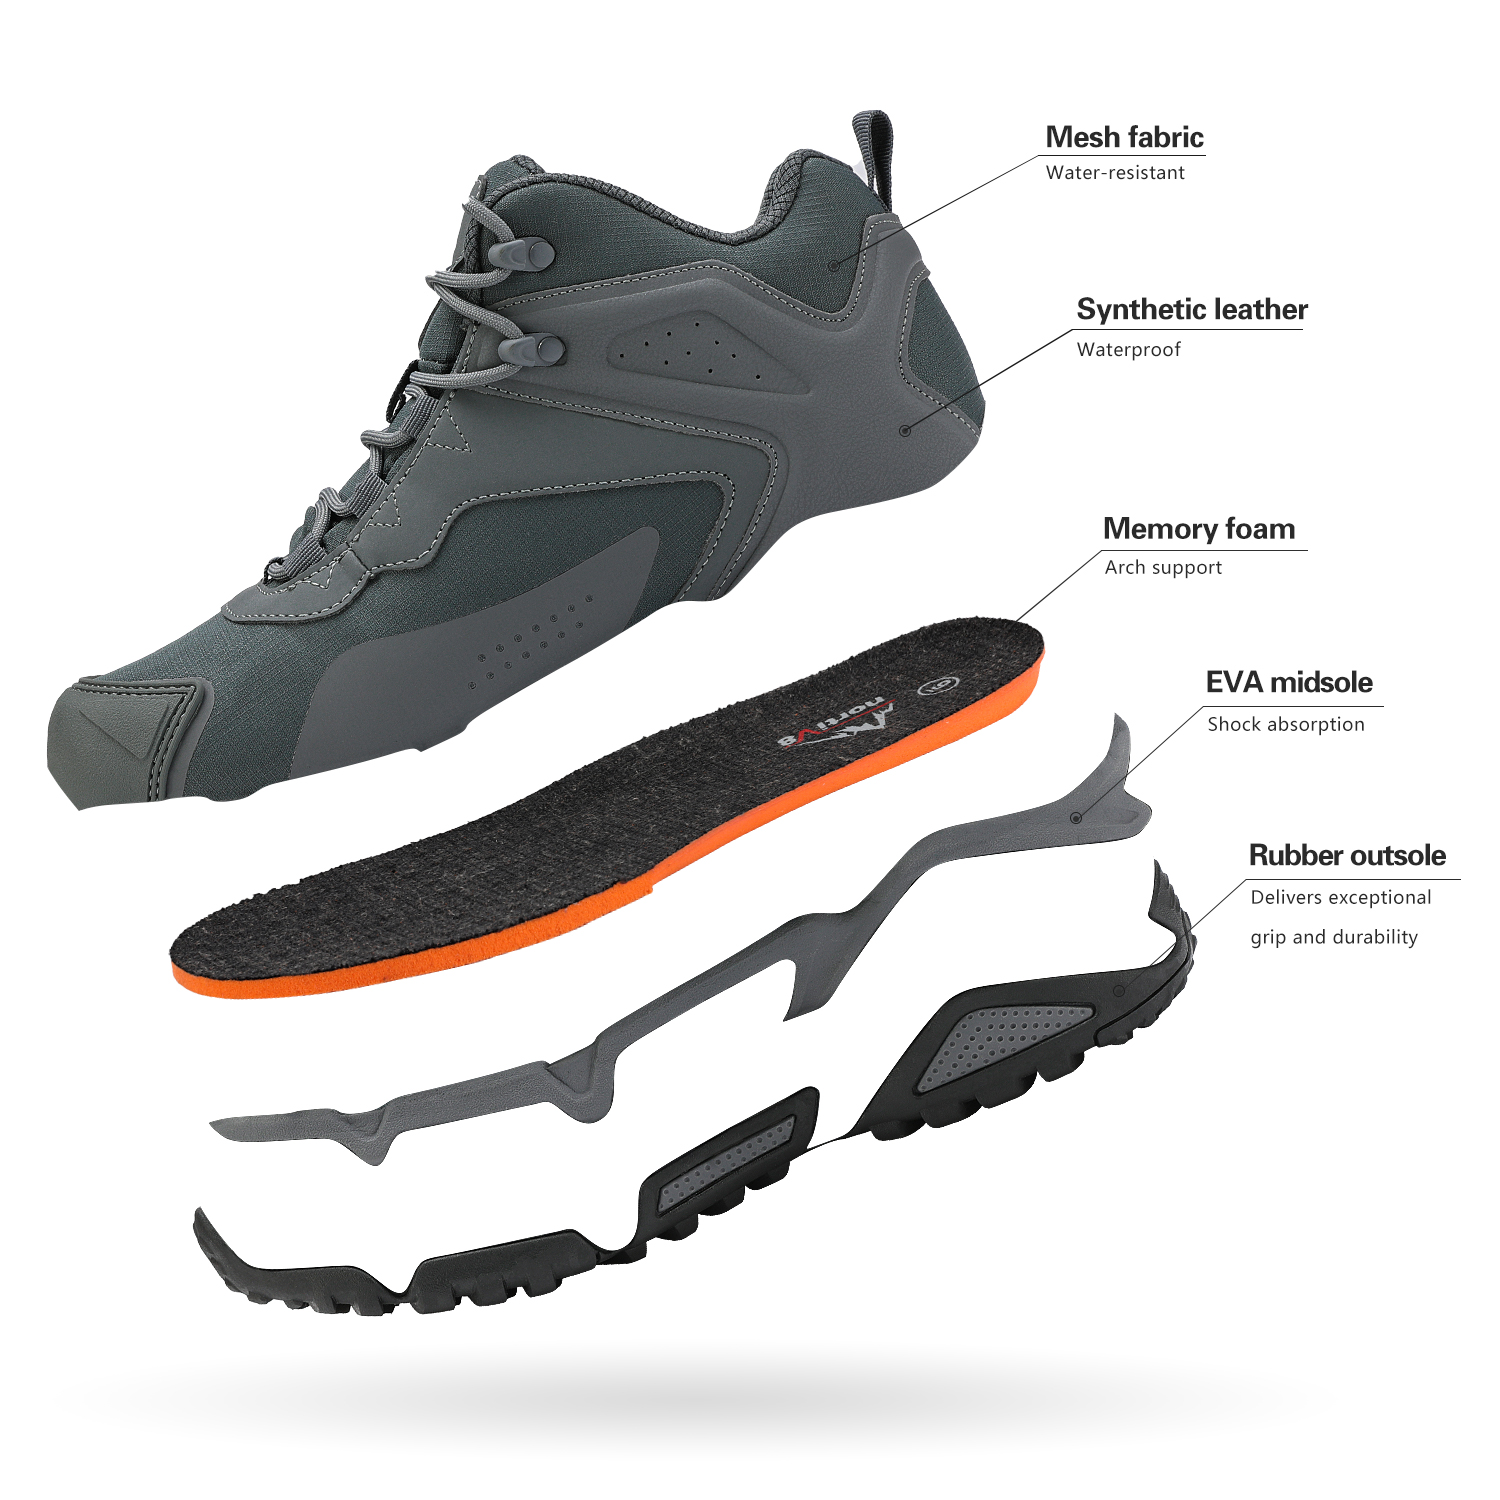 NORTIV-8-Men-039-s-Ankle-Waterproof-Hiking-Boots-Lightweight-Backpacking-Work-Shoes thumbnail 18